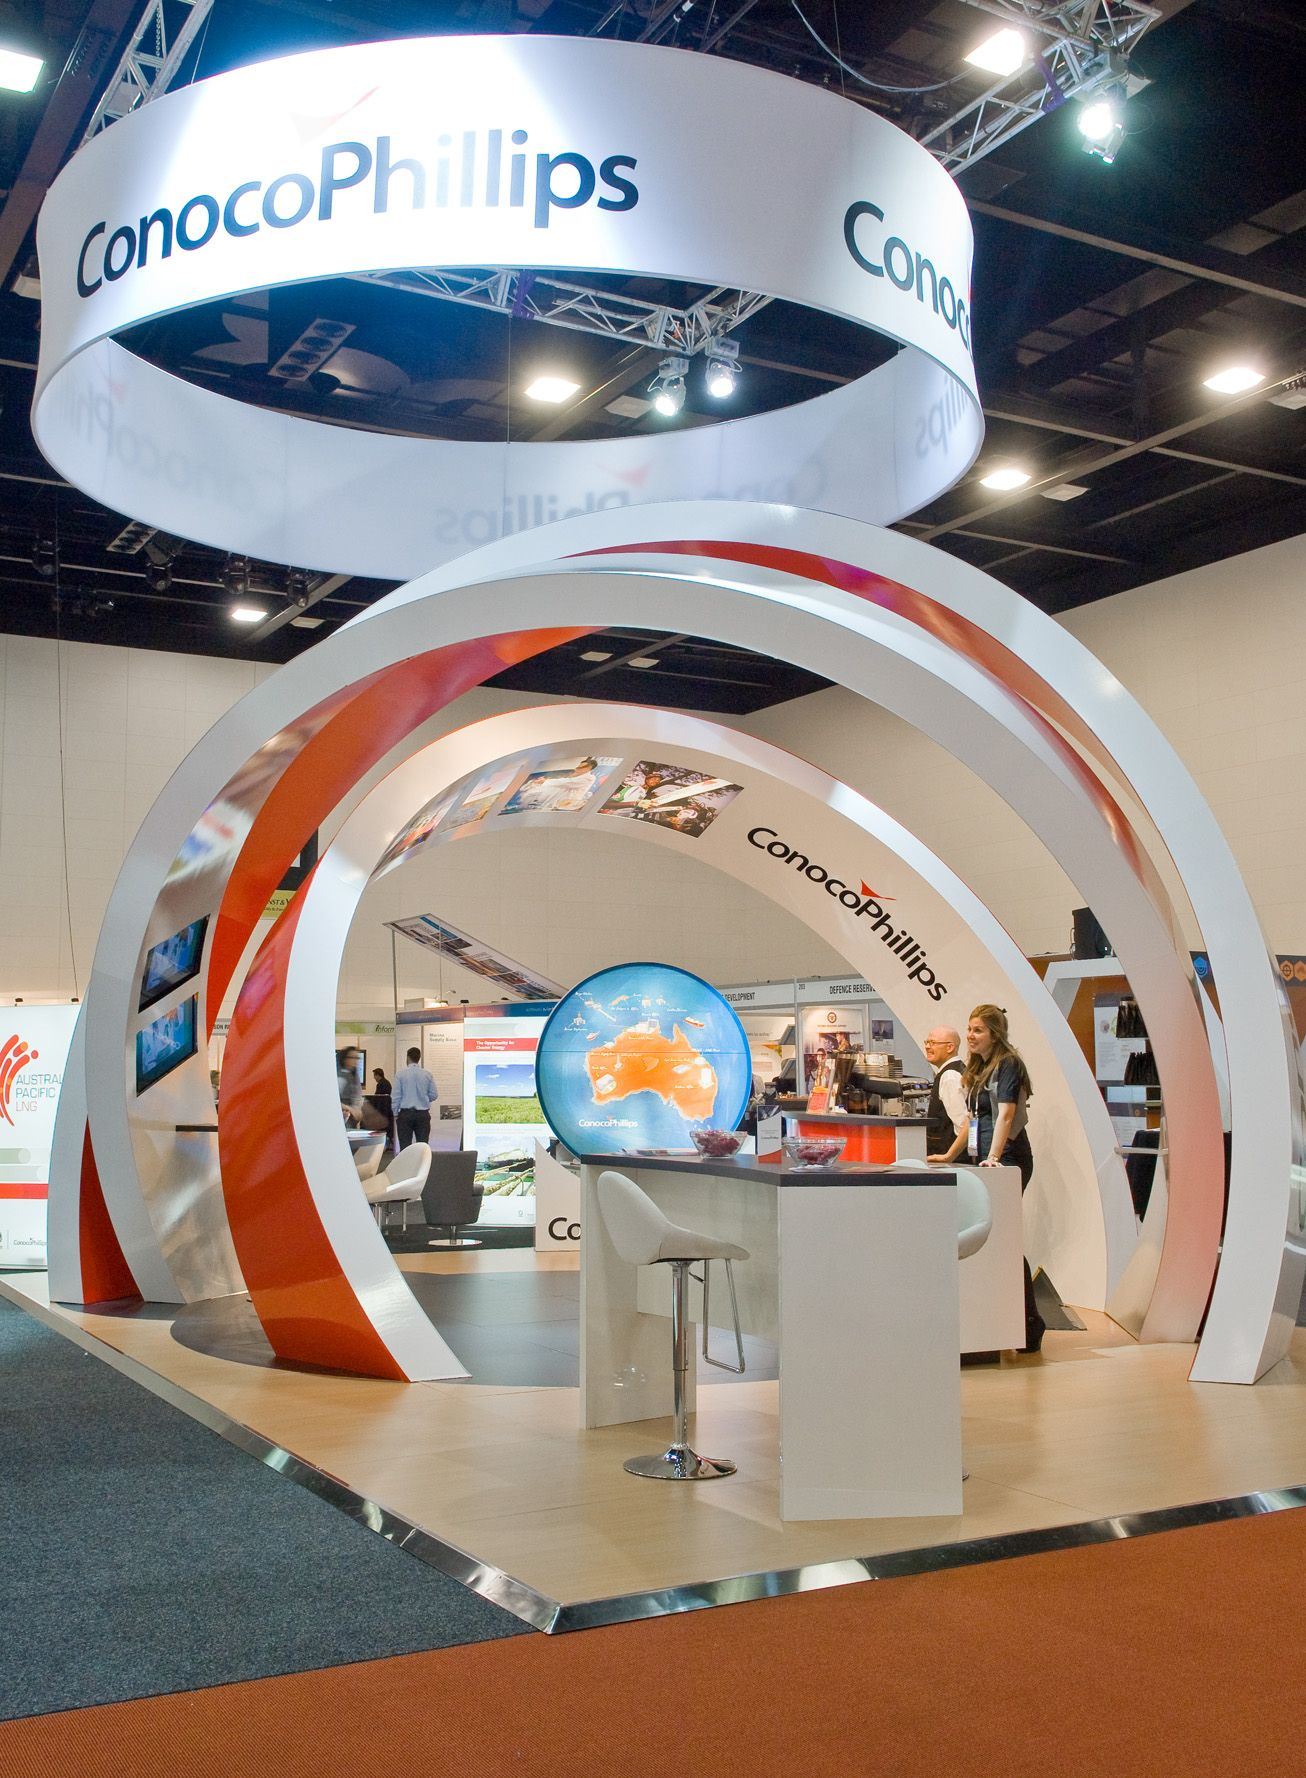 Exhibition Displays Adelaide : Conocophillips appea adelaide peoples choice award